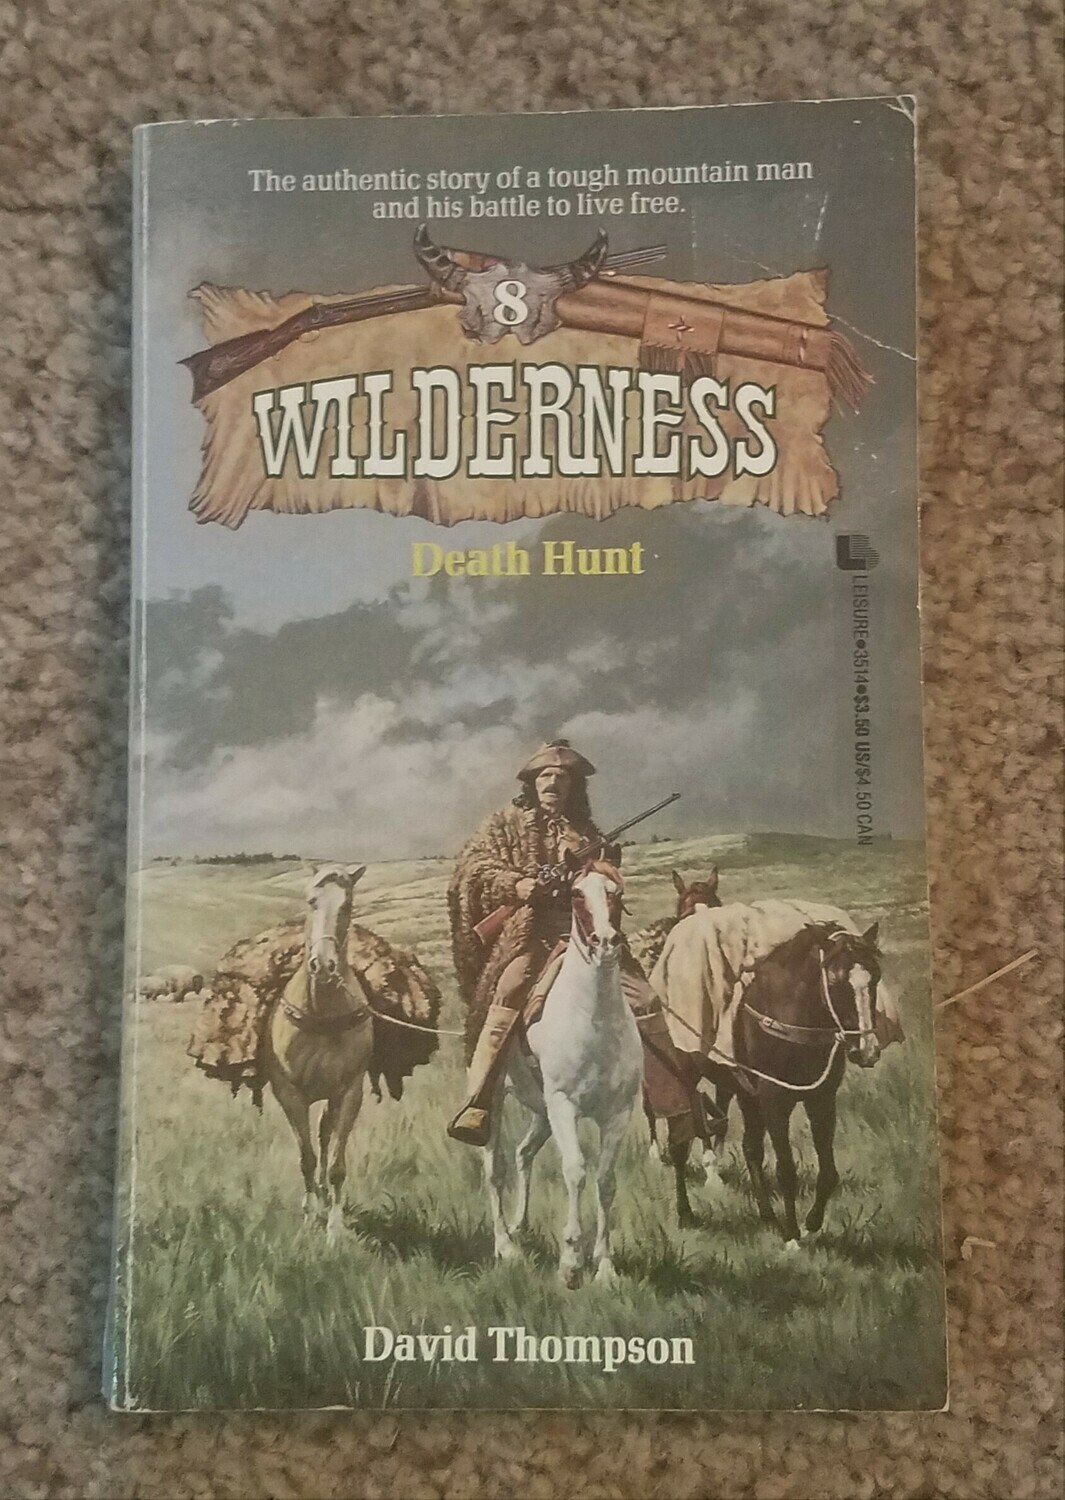 Wilderness: Death Hunt by David Thompson